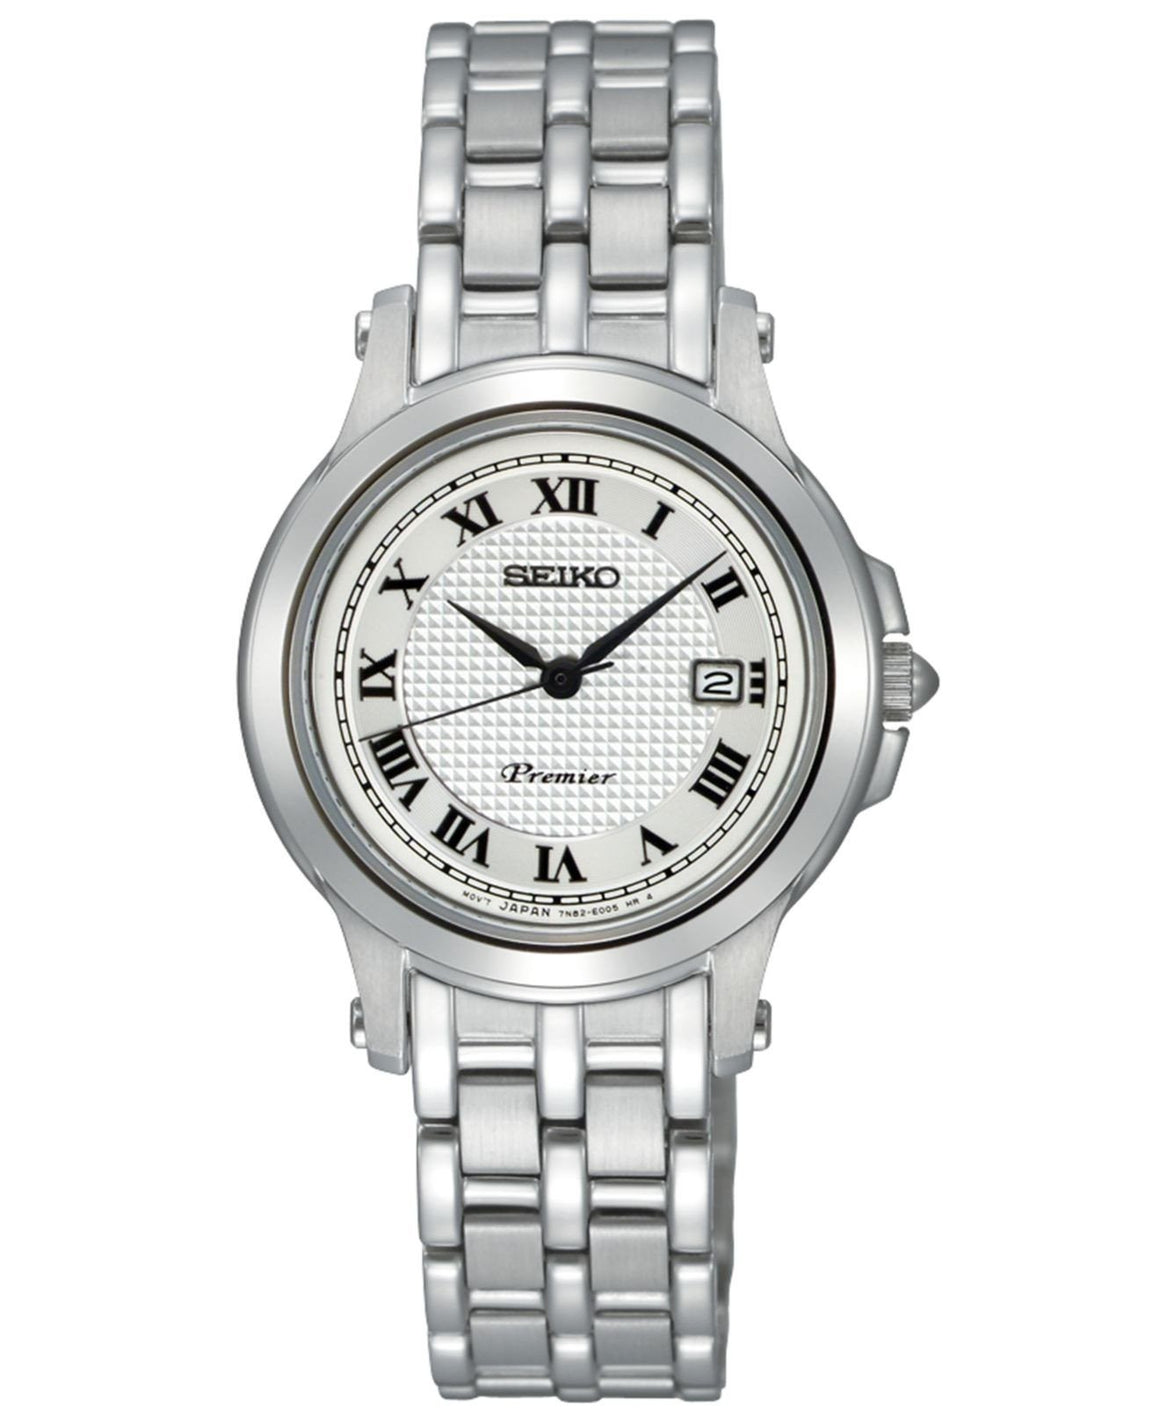 Seiko - SXDE01, Women's Watch, SEIKO - Birmingham Jewelry